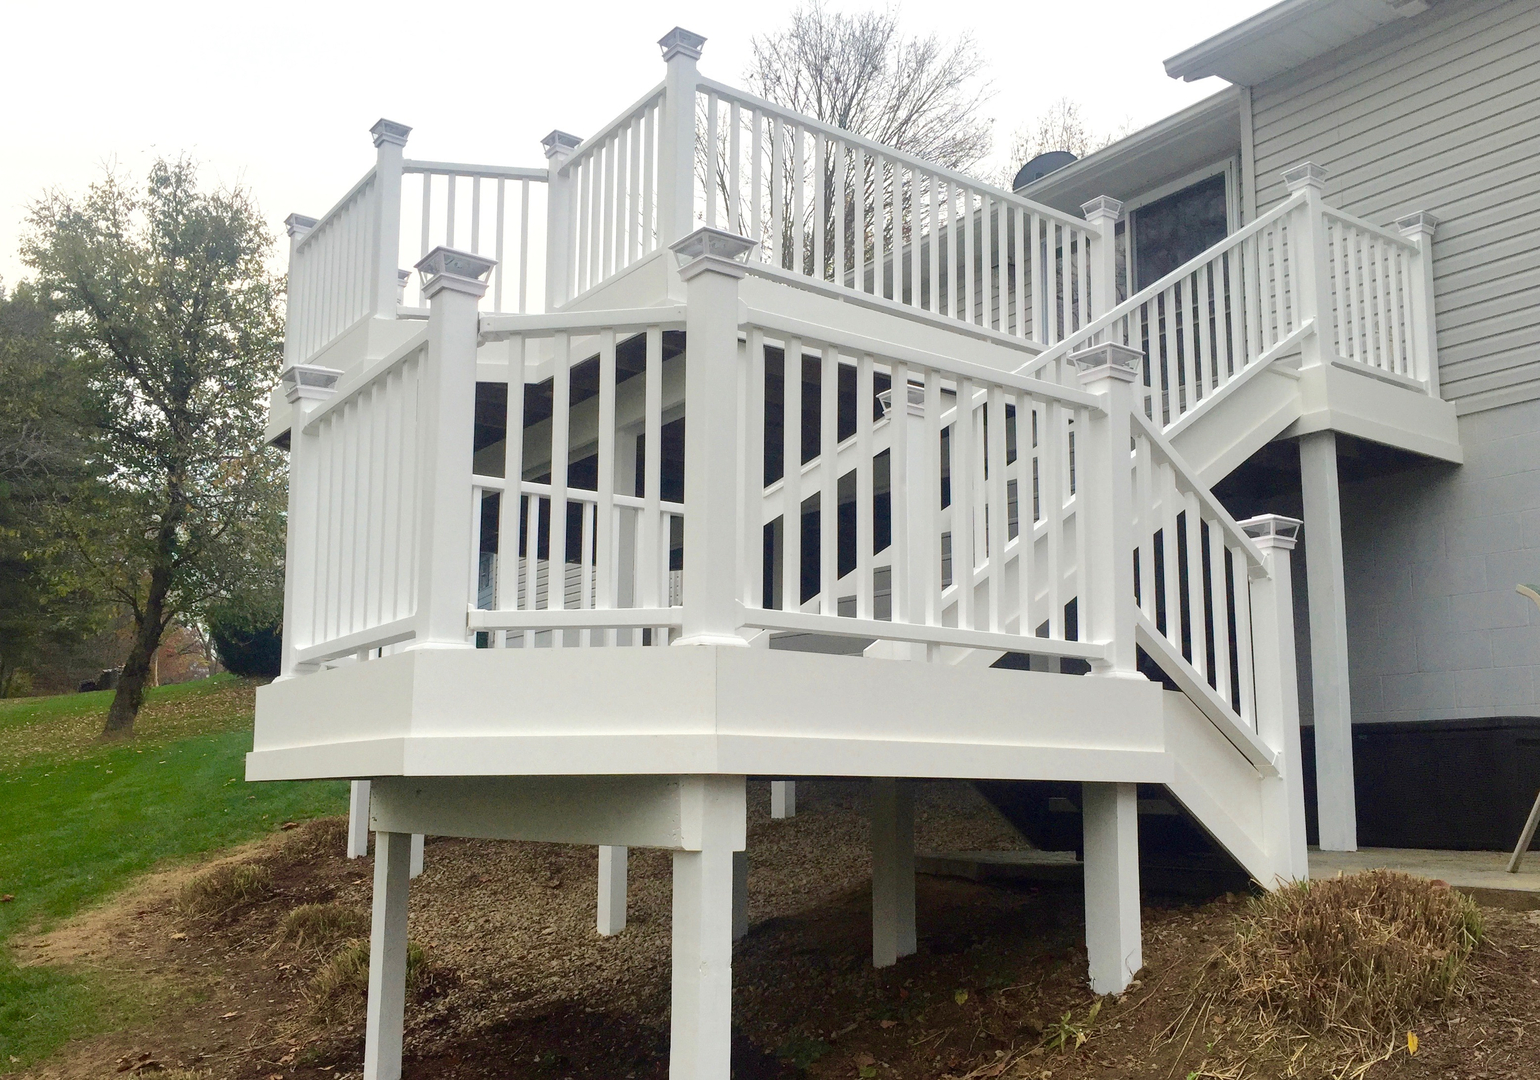 The Decksperts! - Decks And Patios, Porches, Custom Decks